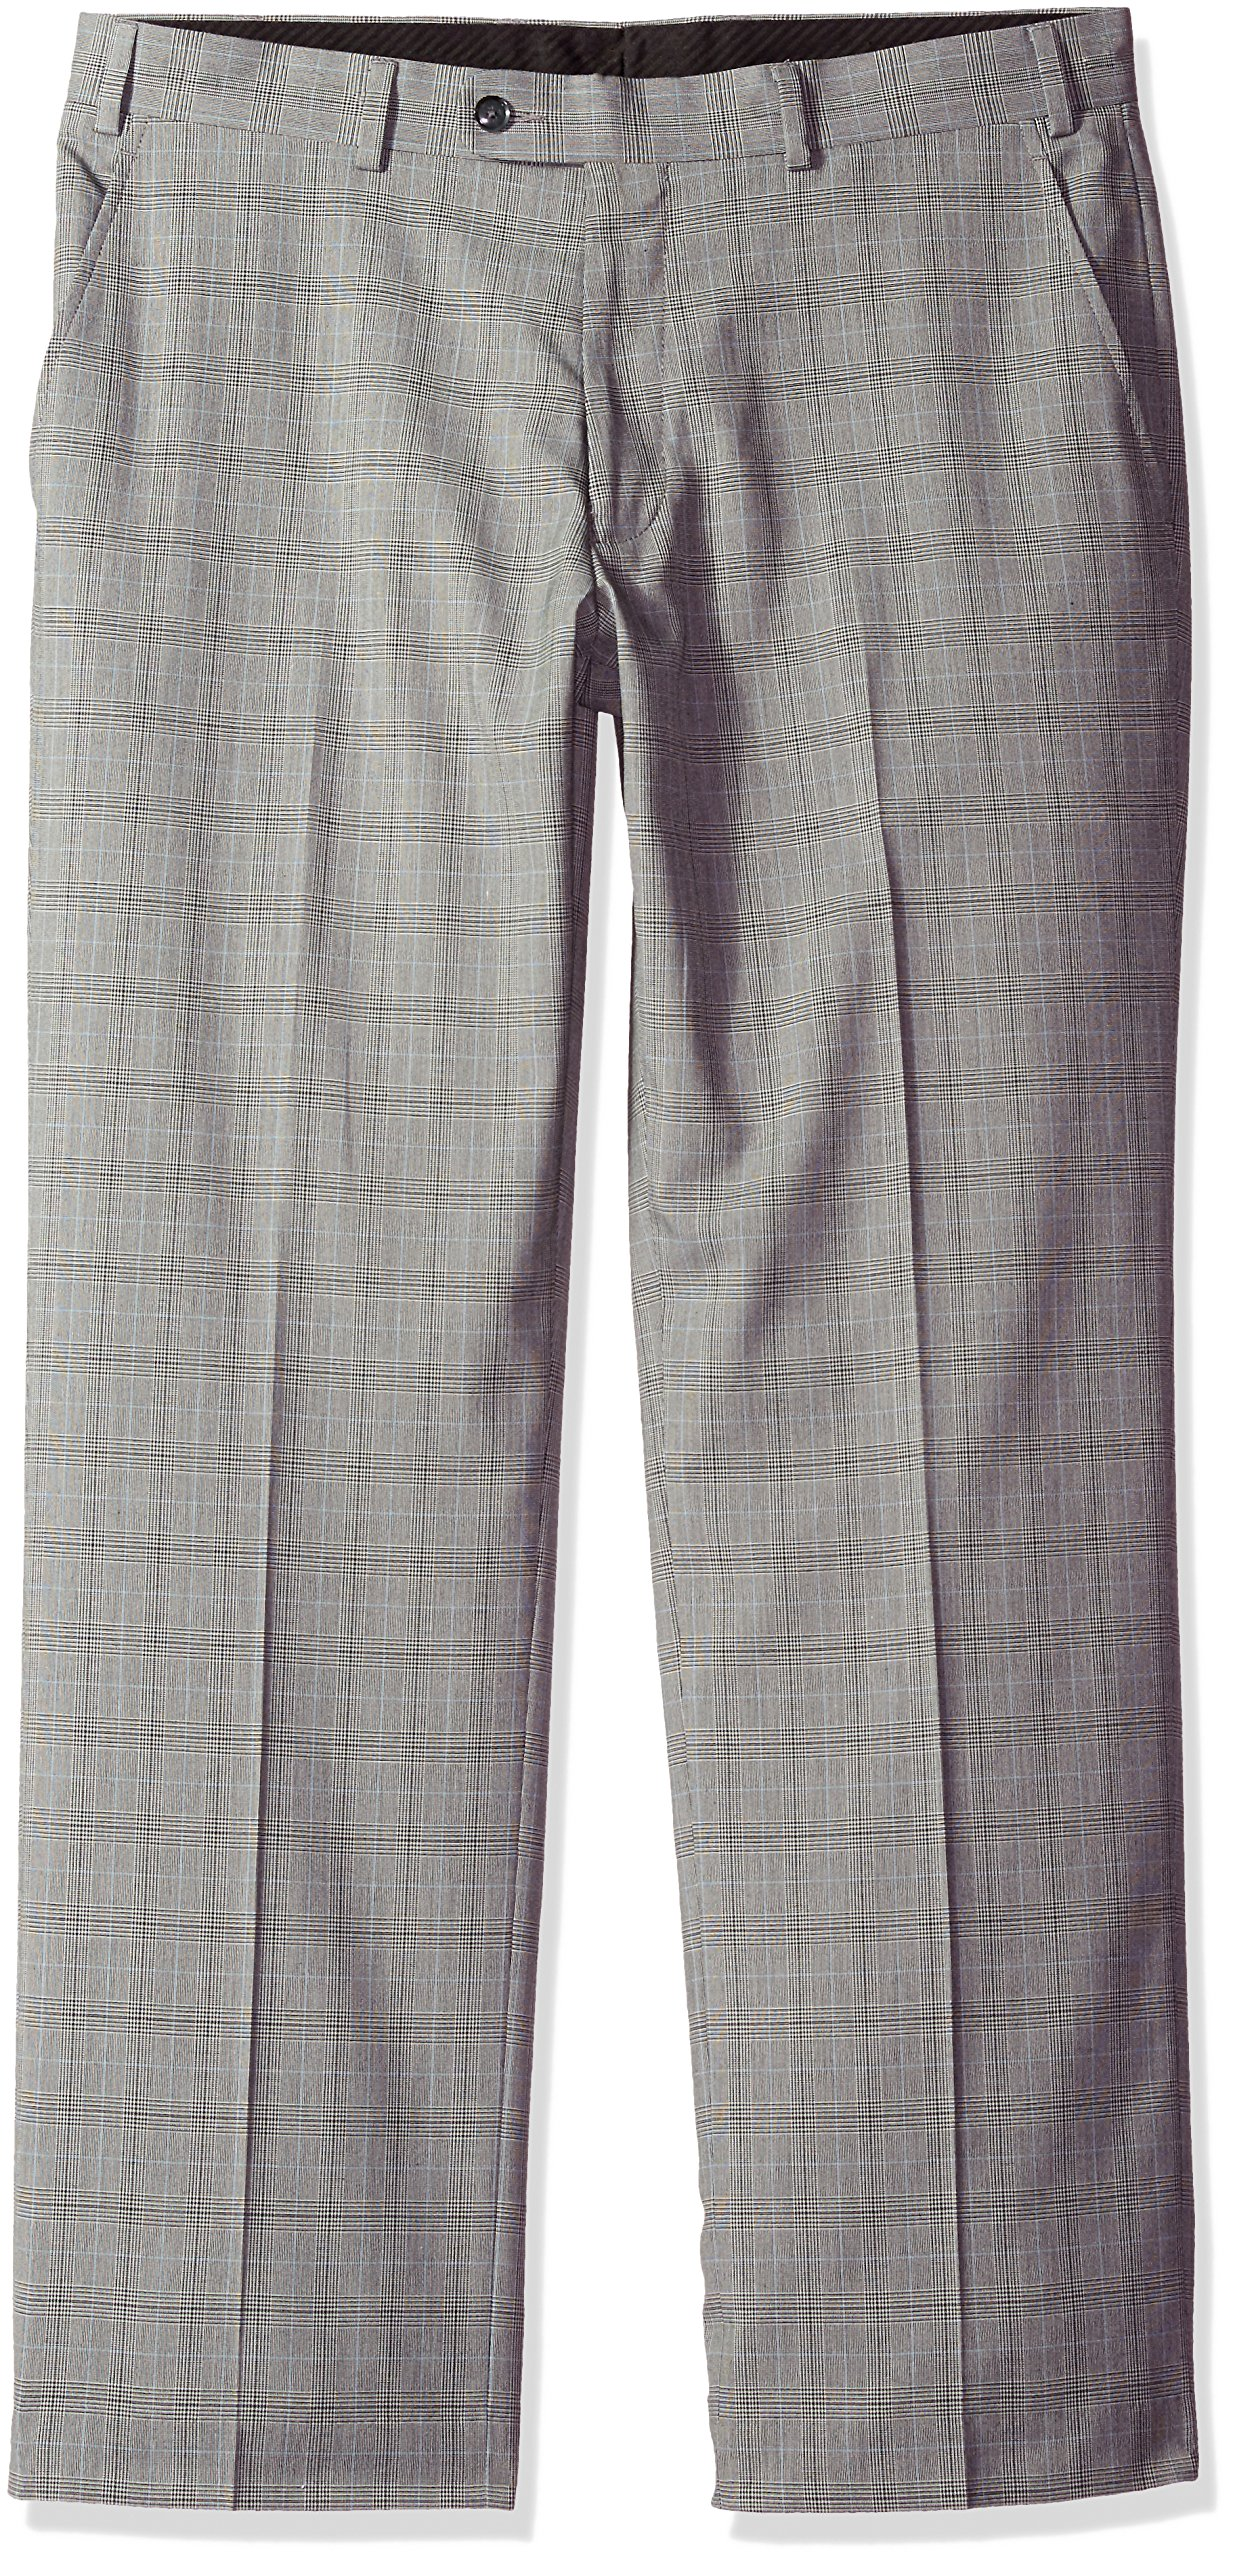 Perry Ellis Men's Modern Fit Suit Separate (Blazer, Pant, and Vest), Grey Plaid Pant, 44W x 32L by Perry Ellis